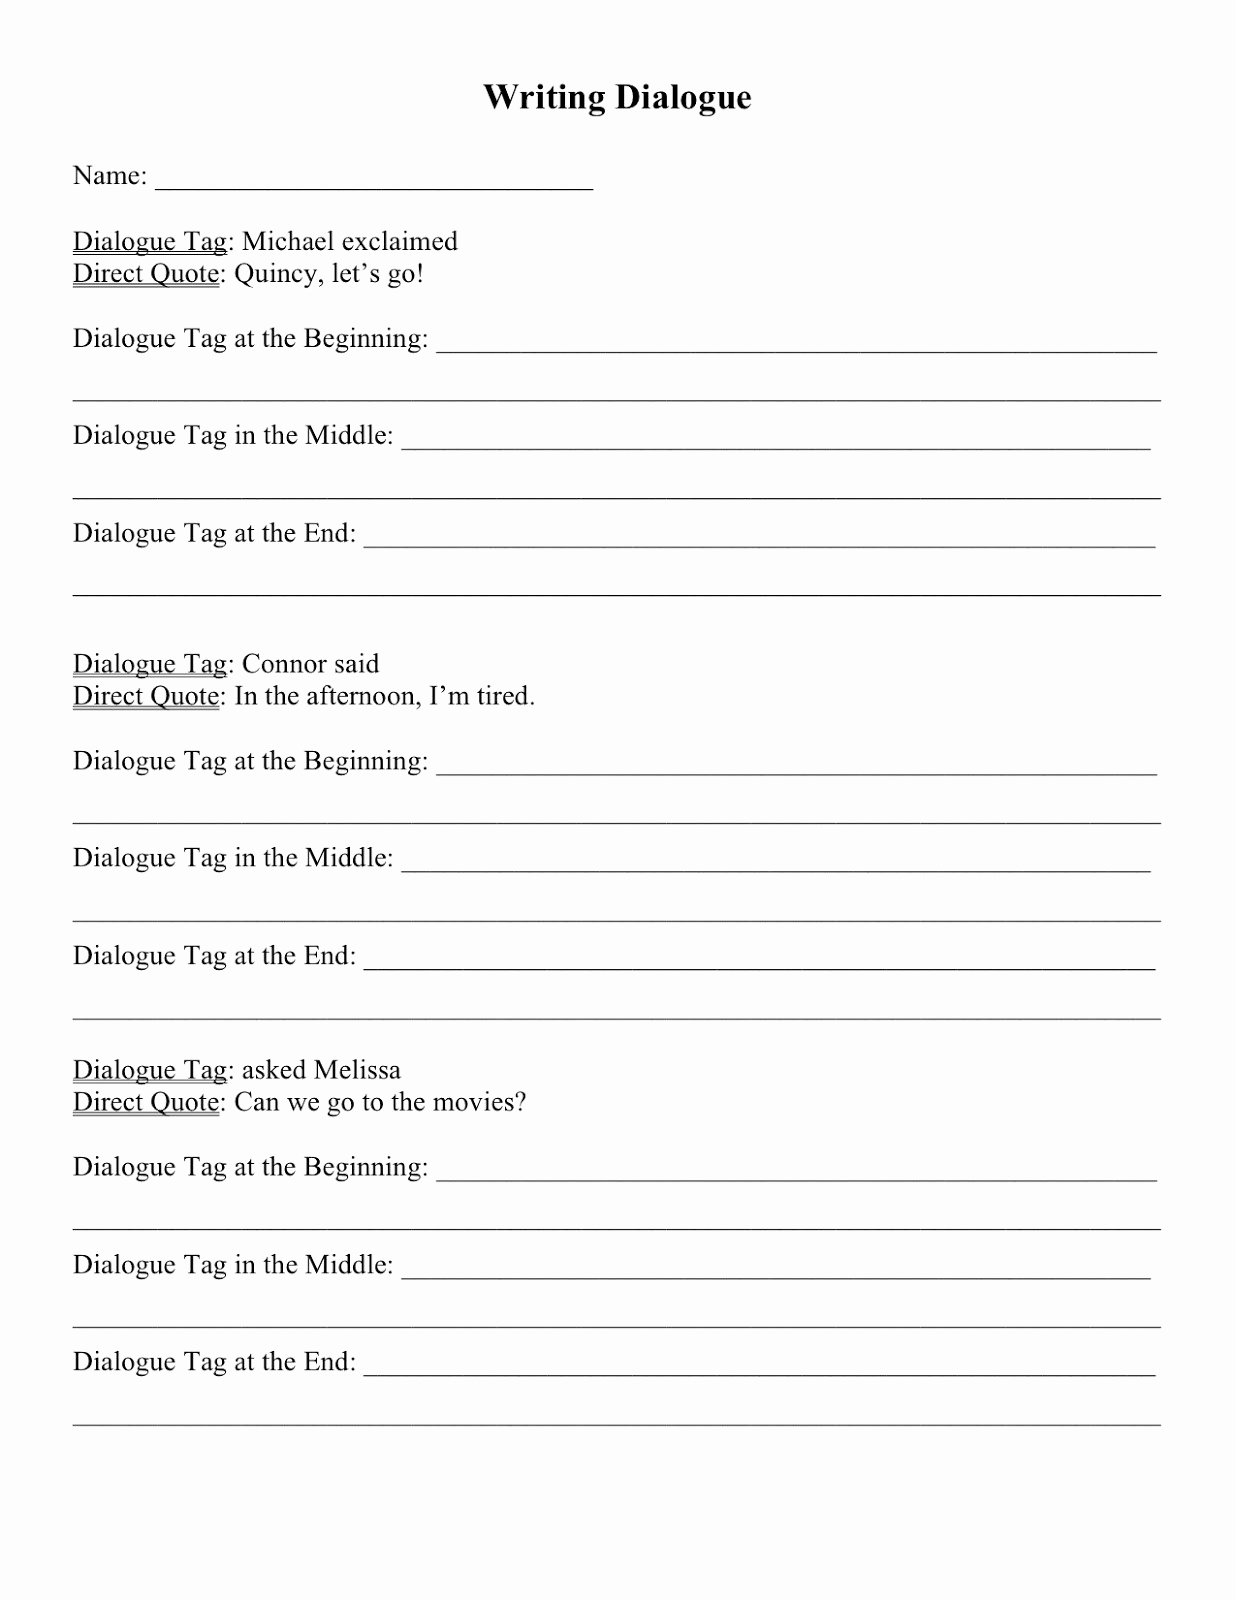 Dialogue Worksheets Middle School Fresh 20 Dialogue Worksheets Middle School